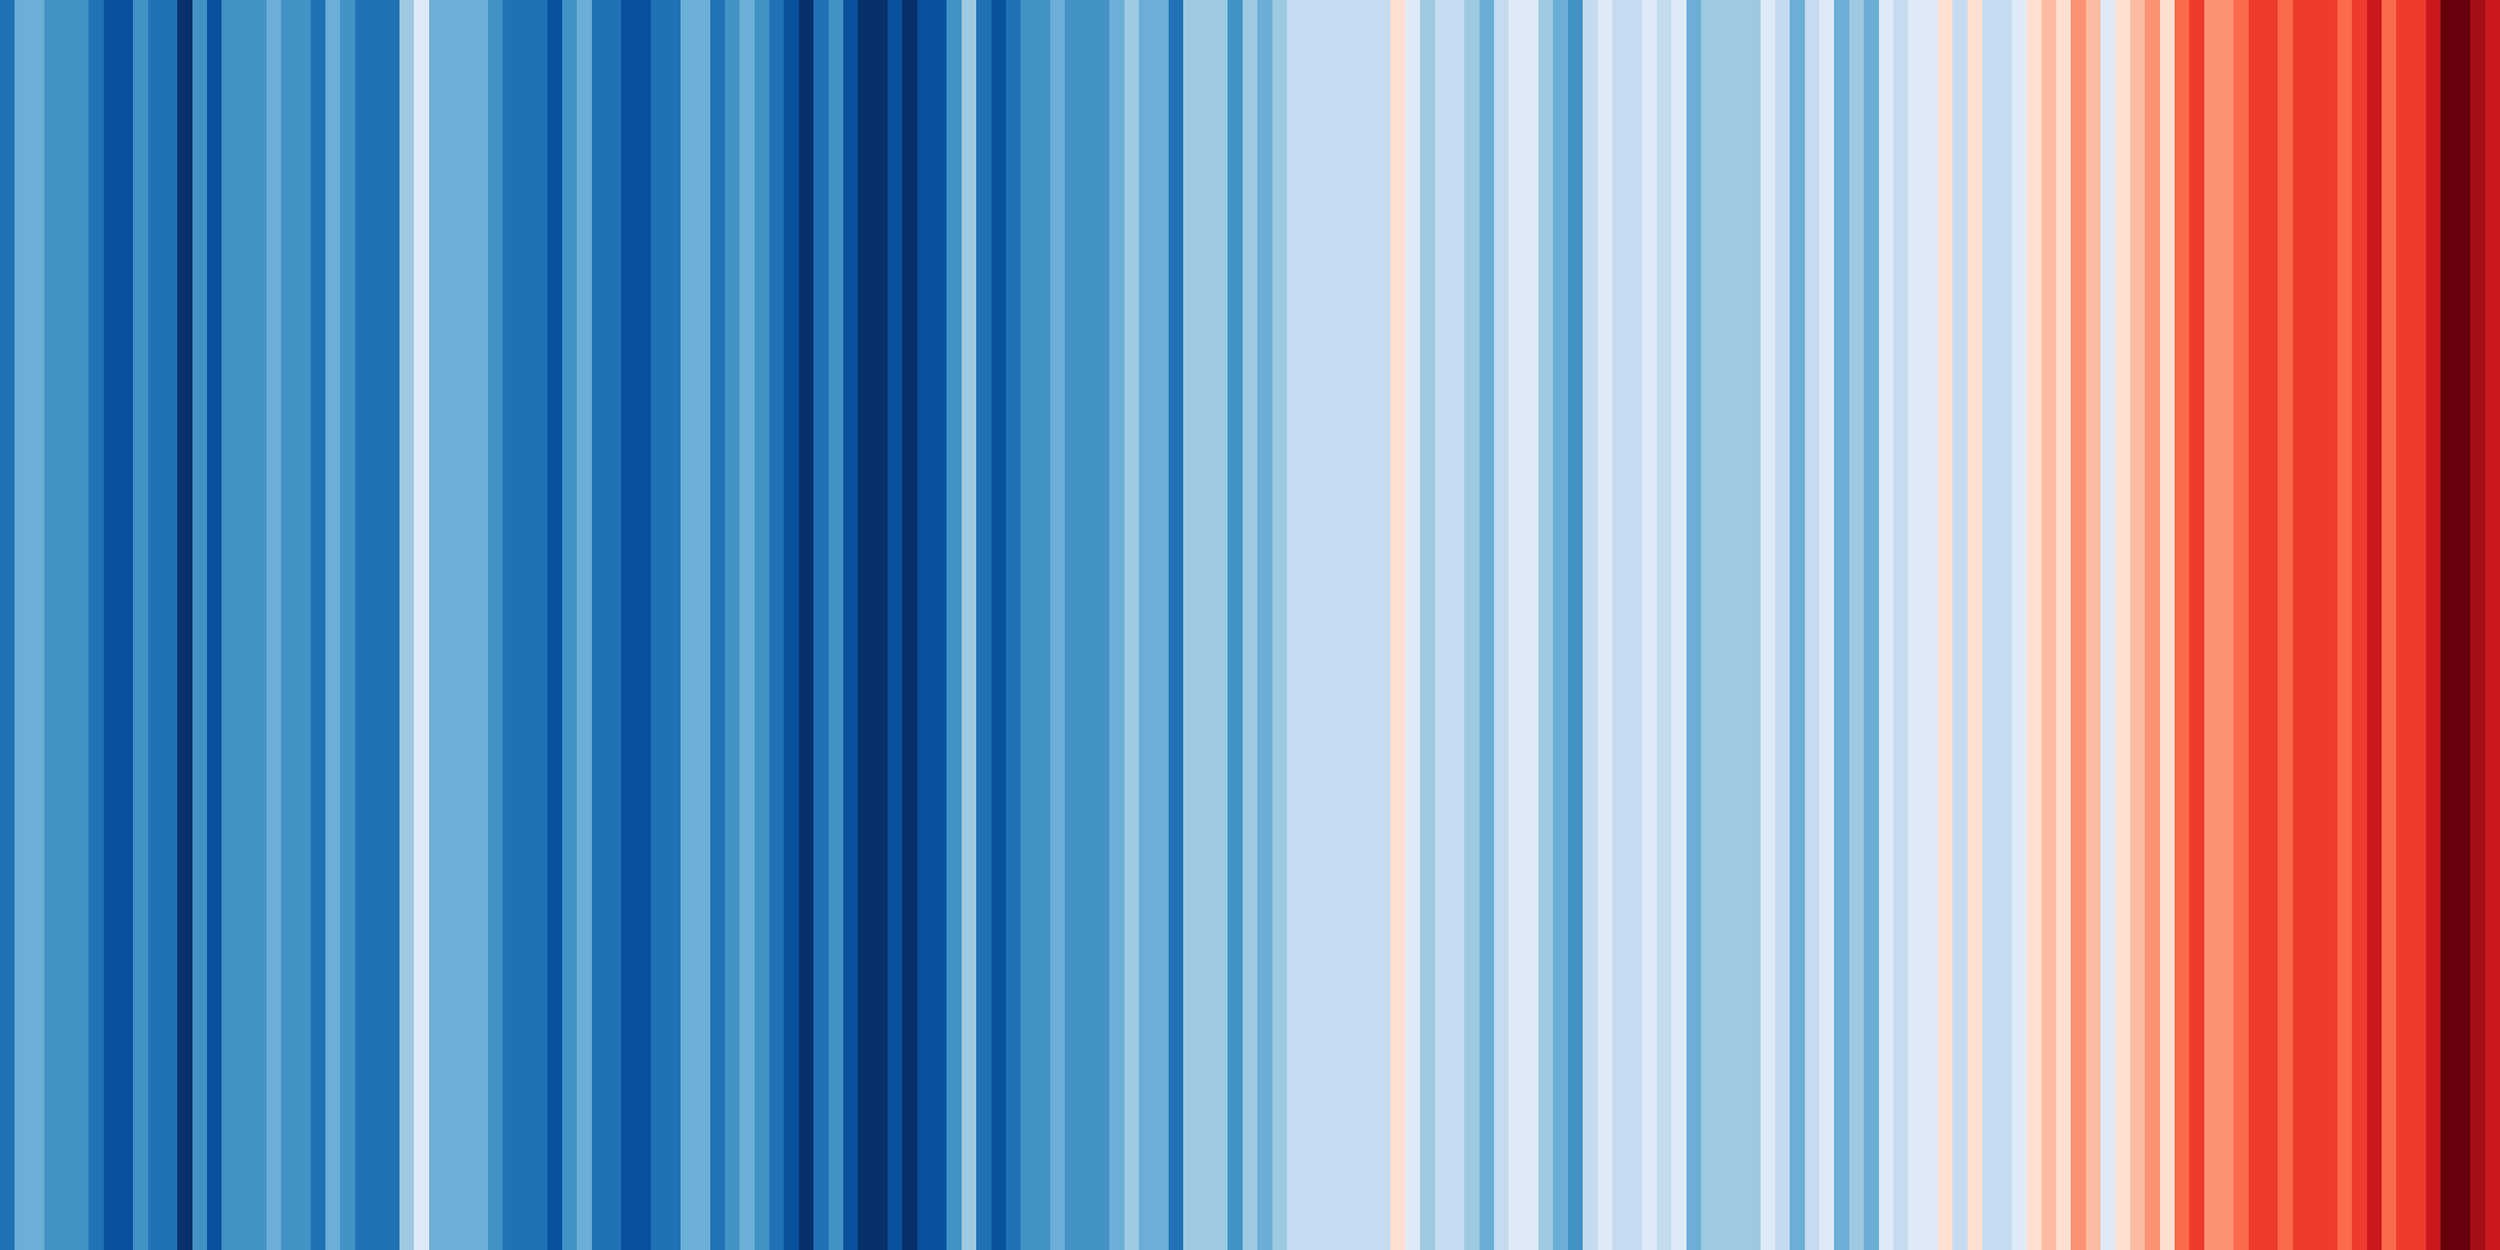 Warming stripes for the globe from 1850-2018